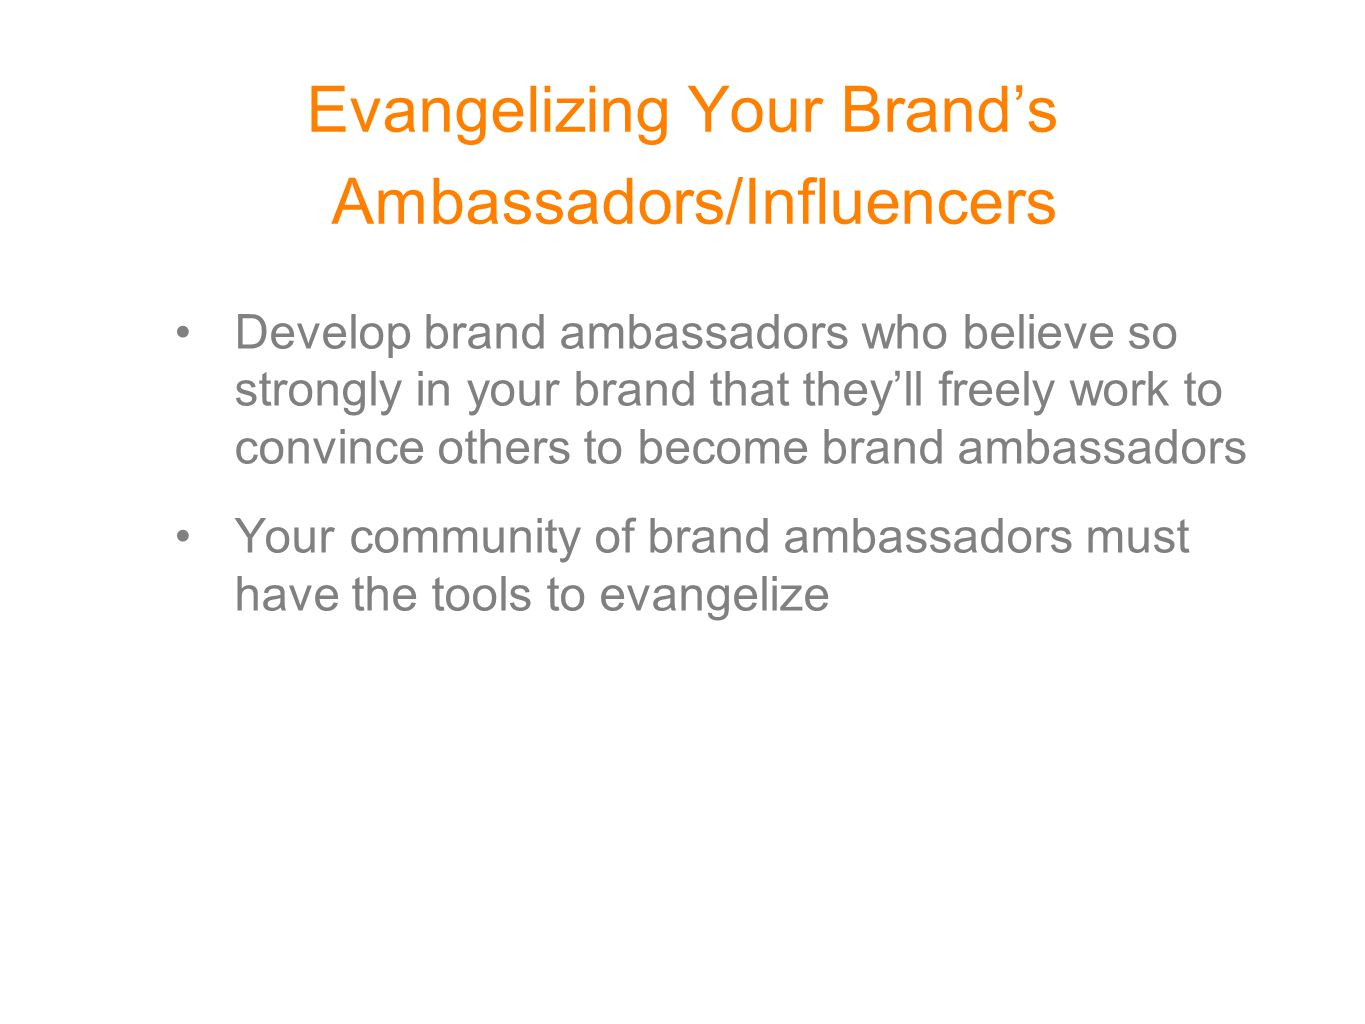 Evangelizing Your Brand's Ambassadors/Influencers Develop brand ambassadors who believe so strongly in your brand that they'll freely work to convince